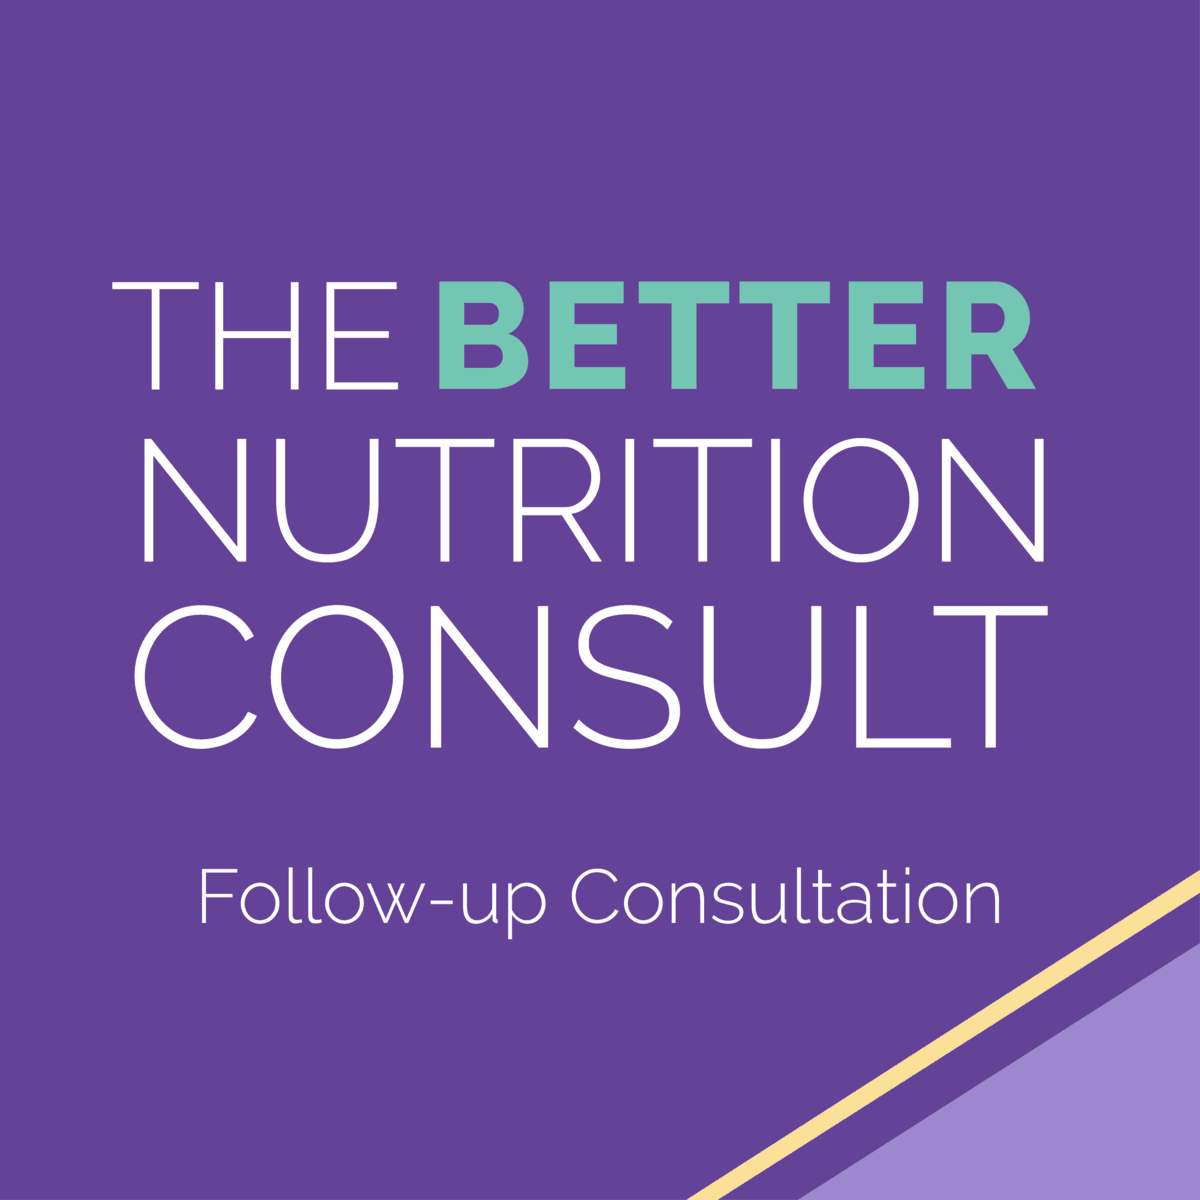 follow-up nutrition consult appointment